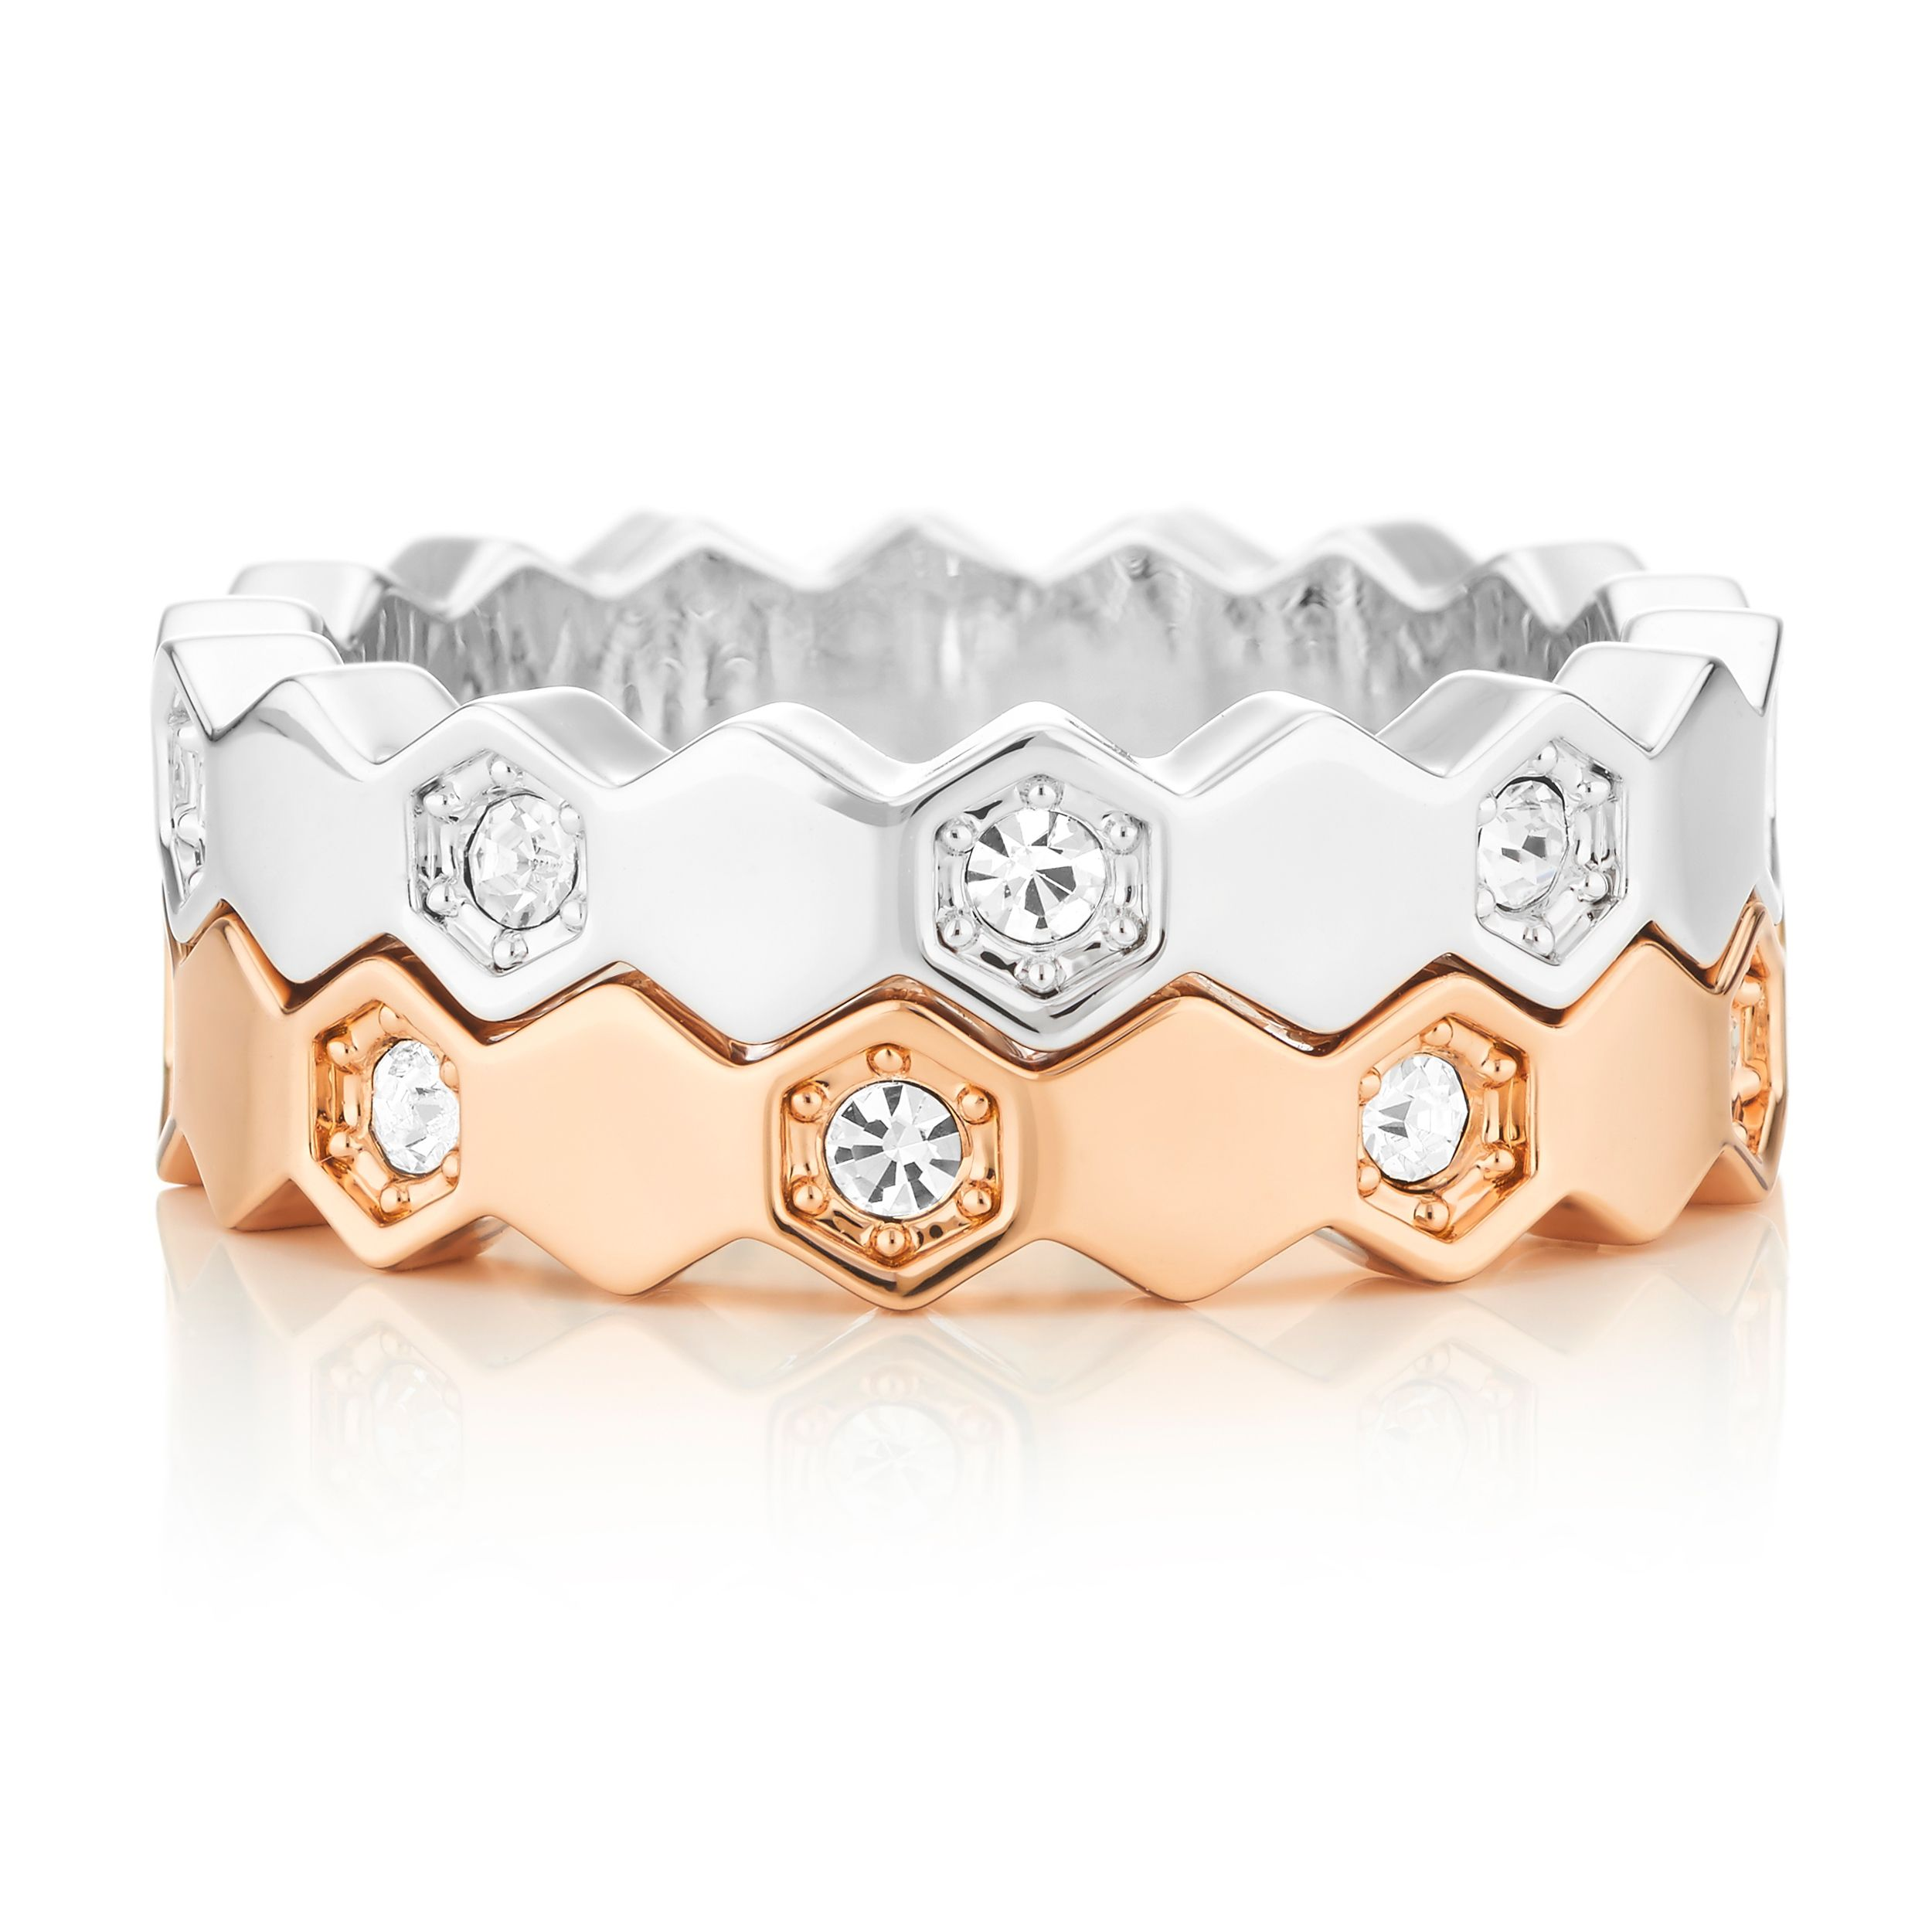 Buckley London Hexagonal Stacking Rings Duo